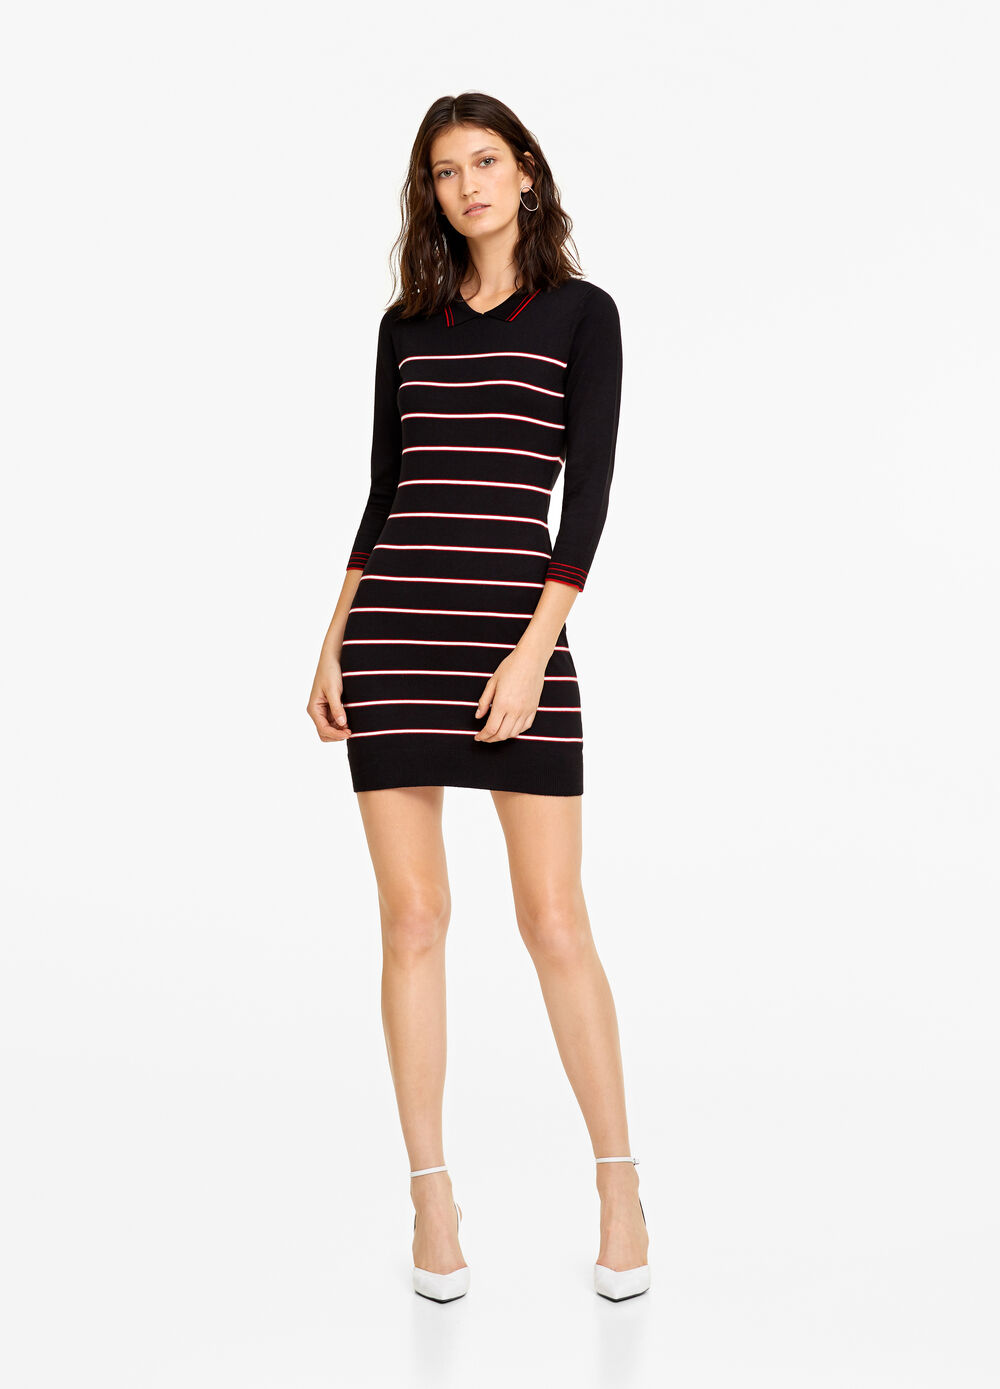 Knitted dress with striped collar